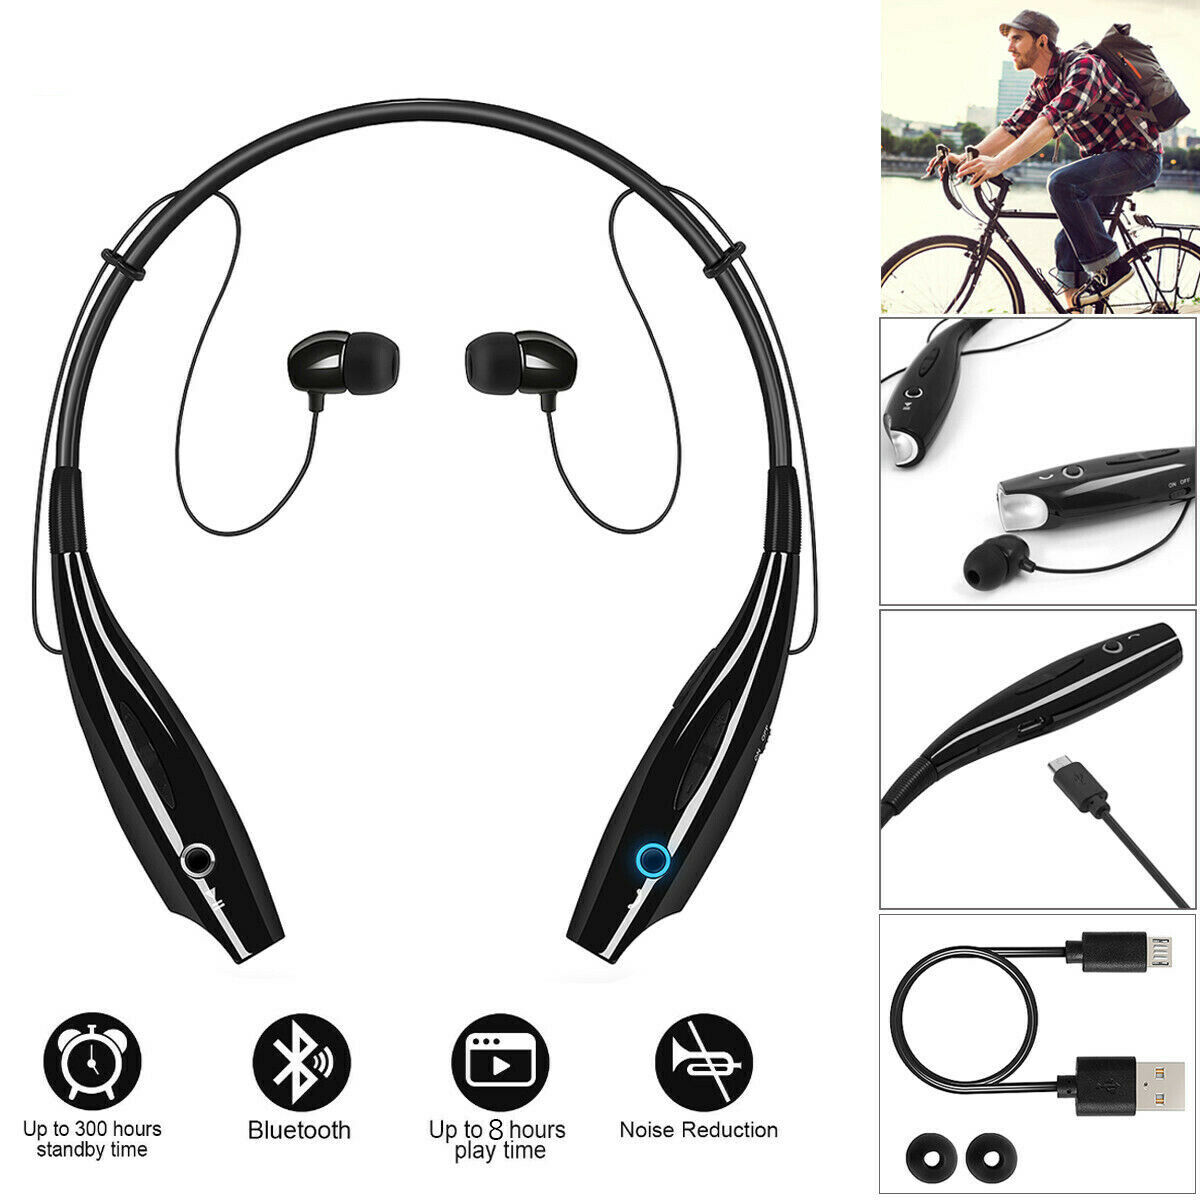 Bluetooth Wireless Headphones Headsets Earphone Neckband Earbuds with Mic USA Consumer Electronics